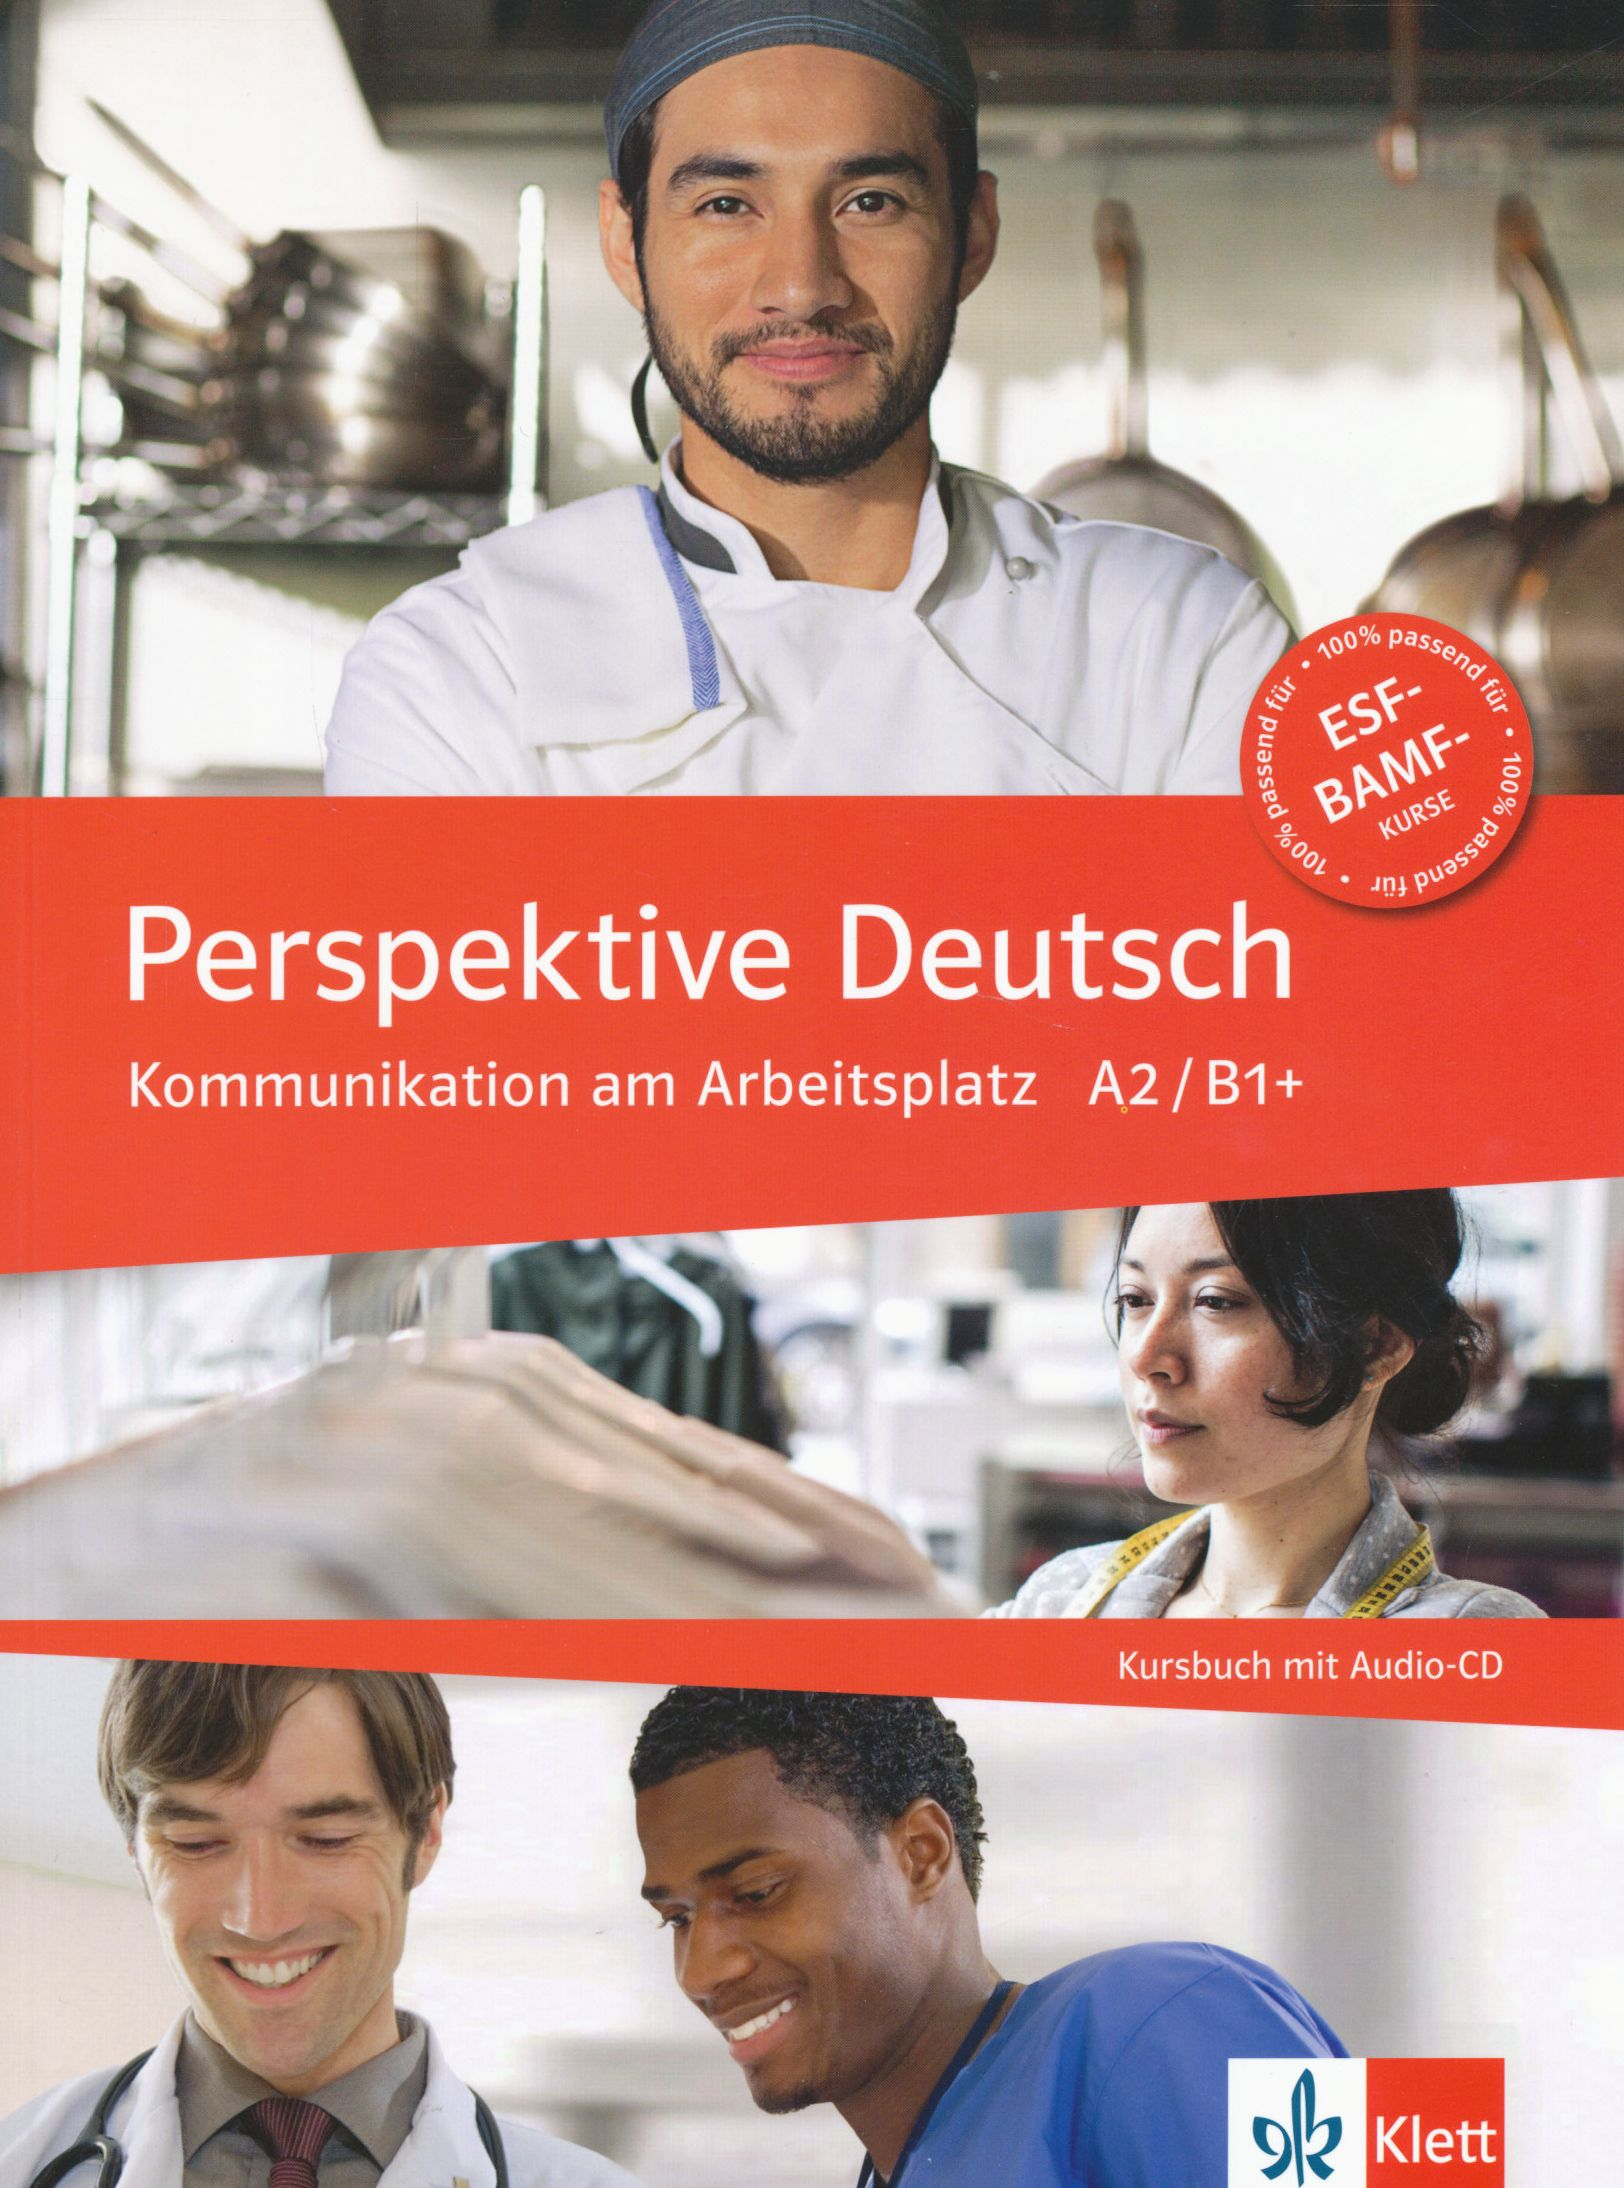 Perspektive Deutsch - Kommunikation am Arbeitsplatz A2/B1+ mit Audio Cd